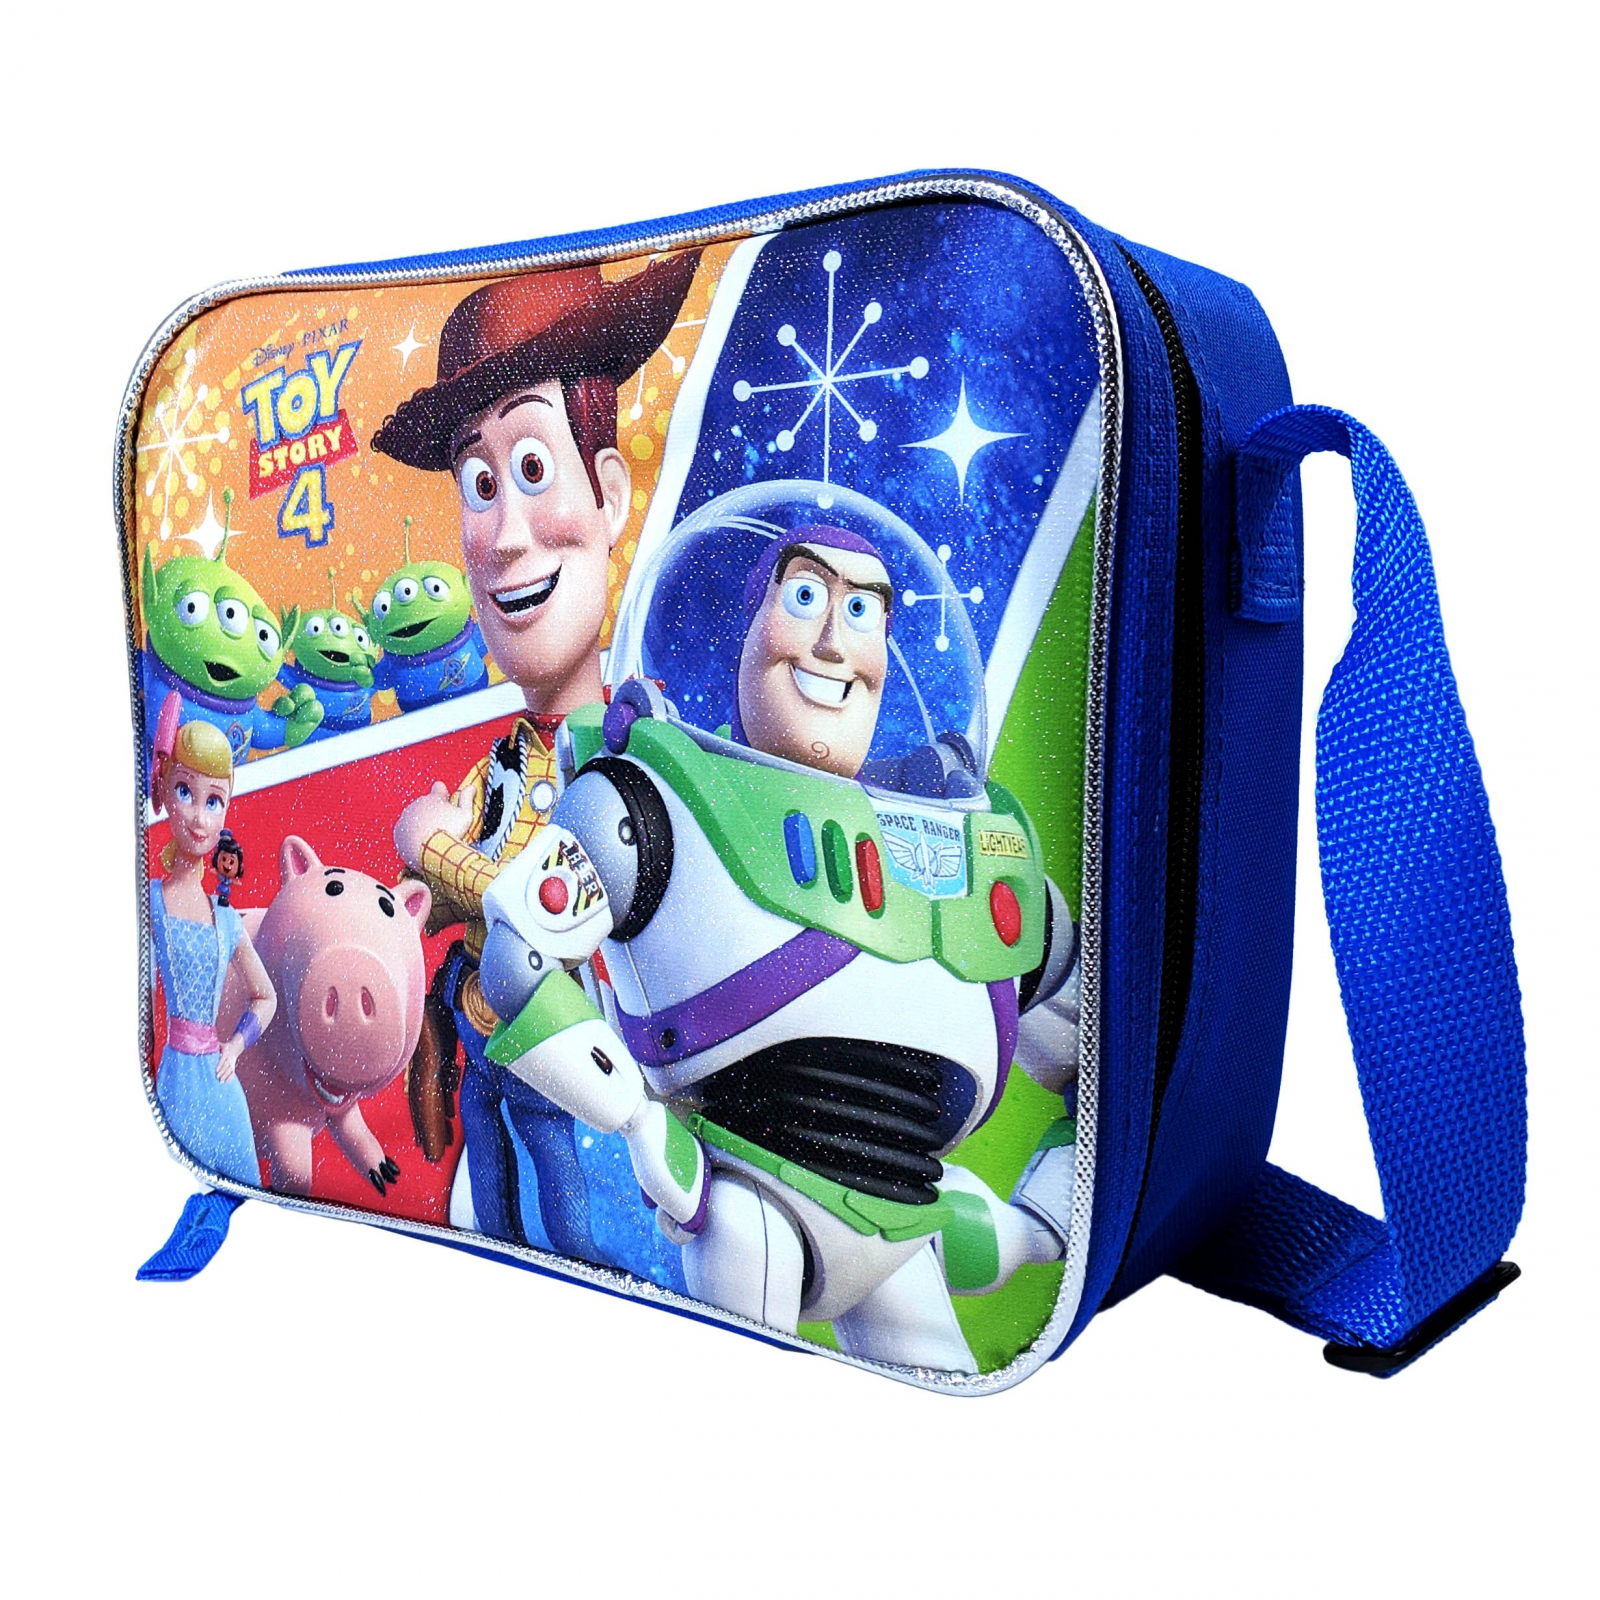 97e0c6a997ea Details about Disney Toy Story 4 Kids Insulated Lunch Box - Blue